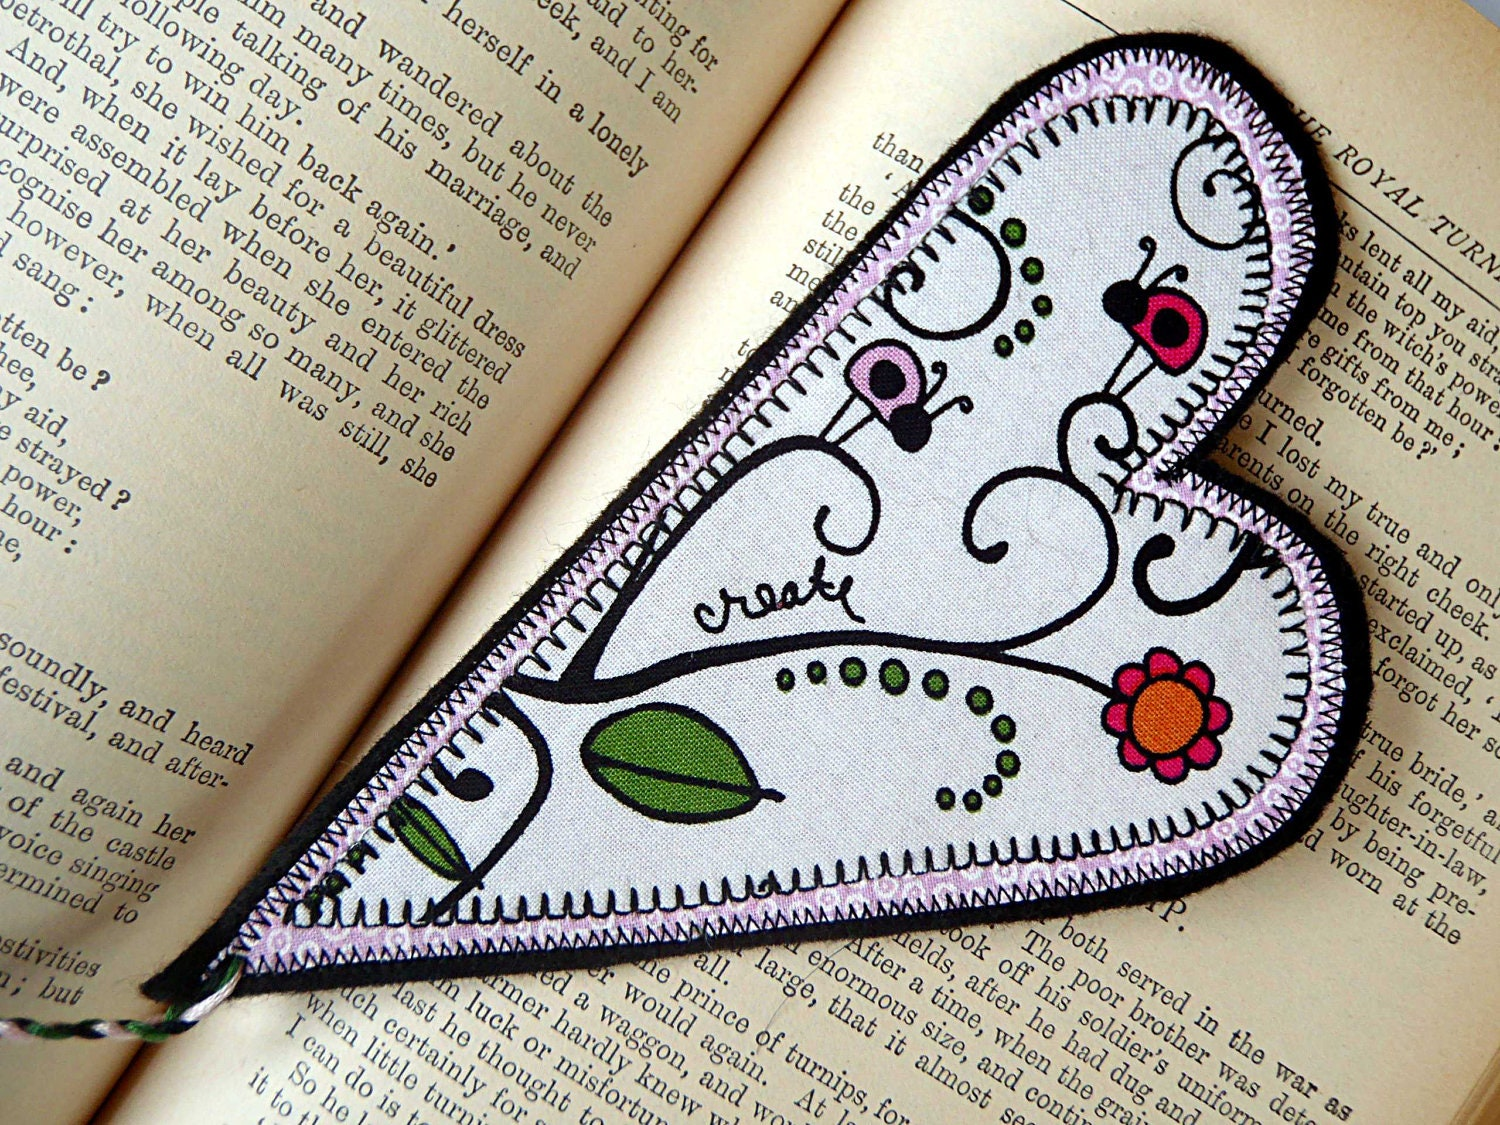 Valentine Heart Bookmark: Fabric wih Flowers and Lady Bugs, Pink Accent - ArtfullySew